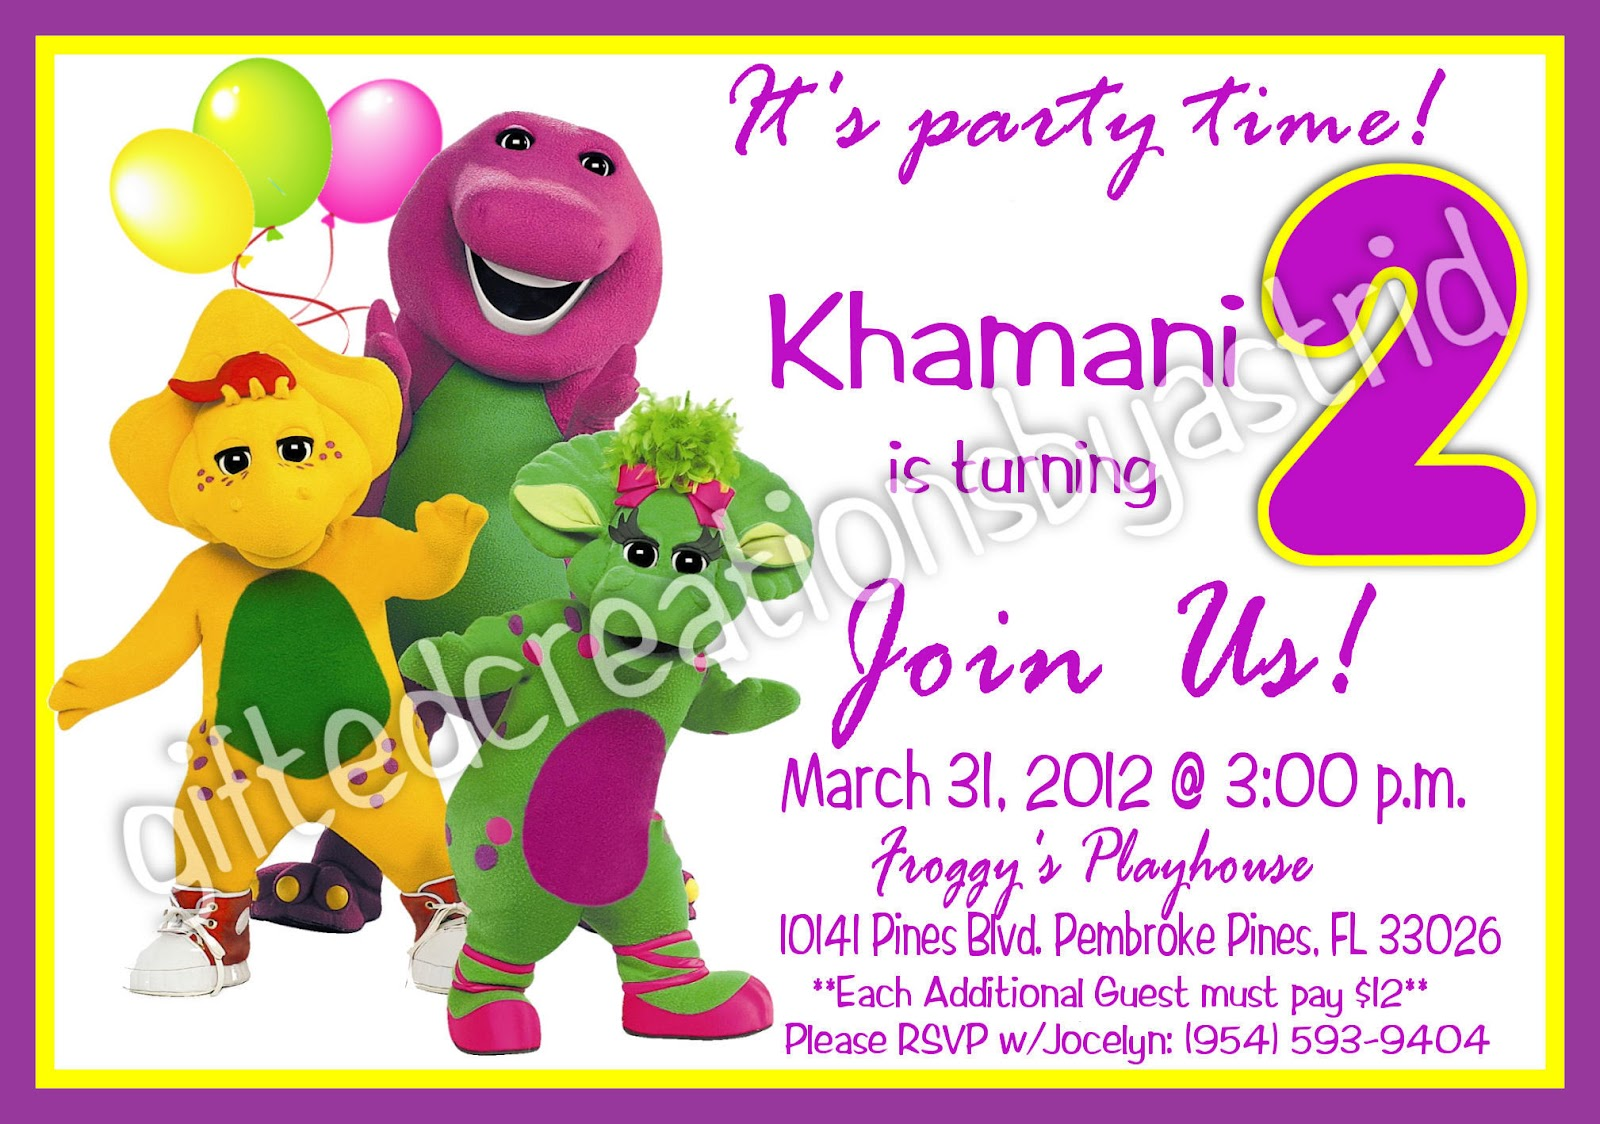 40th birthday ideas barney birthday invitation templates file name barneyinvitation2waterg resolution 1600x1600 image monicamarmolfo Images